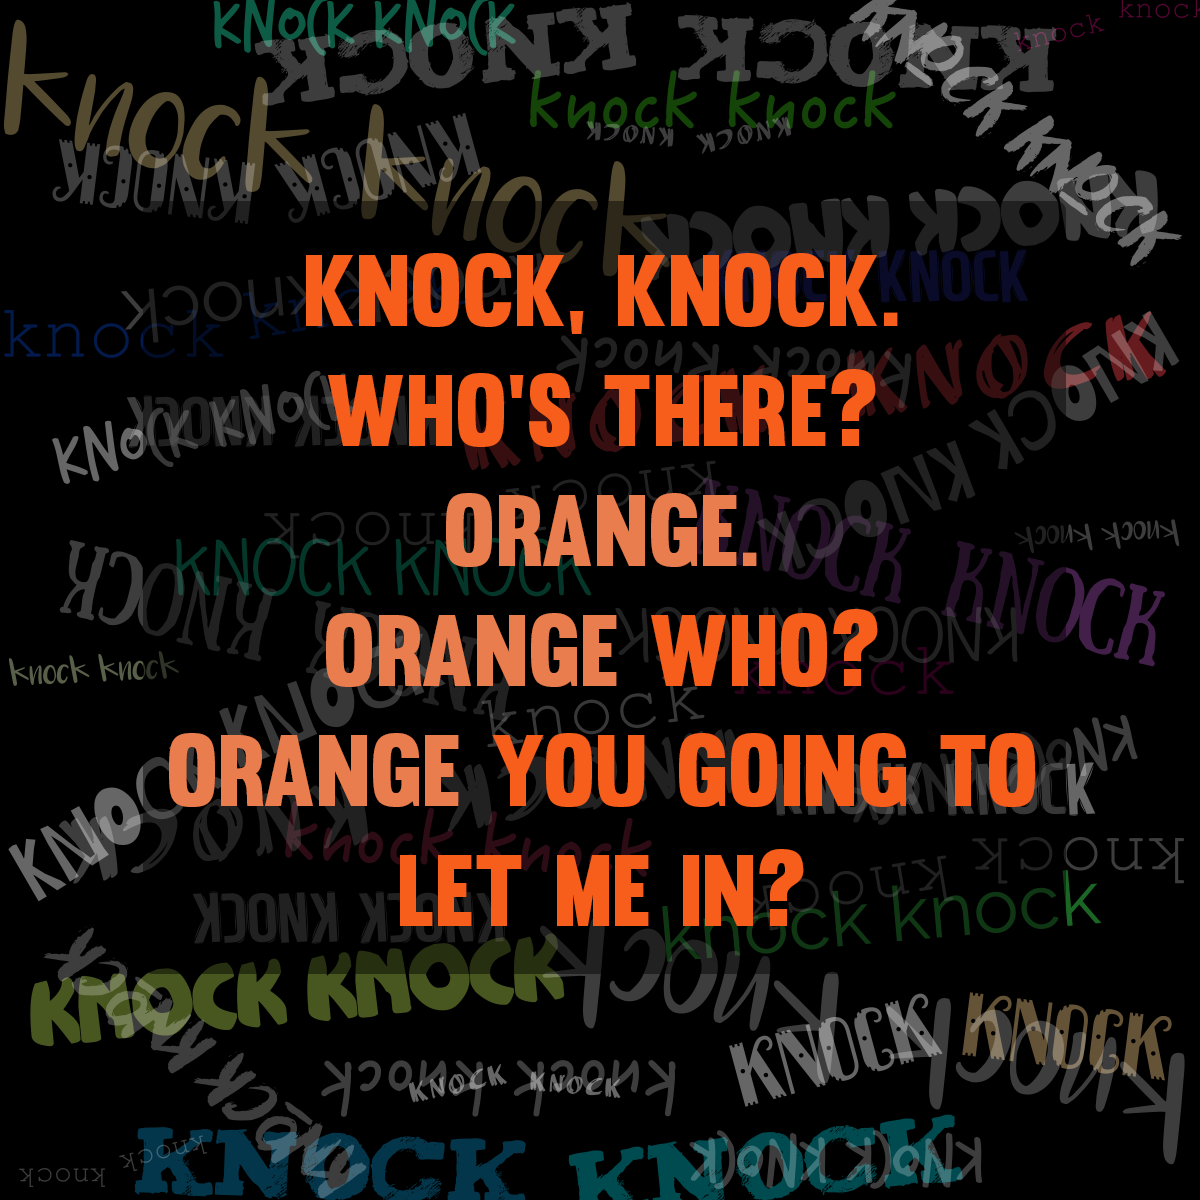 October 31st Is National Knock Knock Jokes Day What S Your Favorite Knock Knock Joke Knockknock Jokes Knock Knock Jokes Knock Knock Jokes